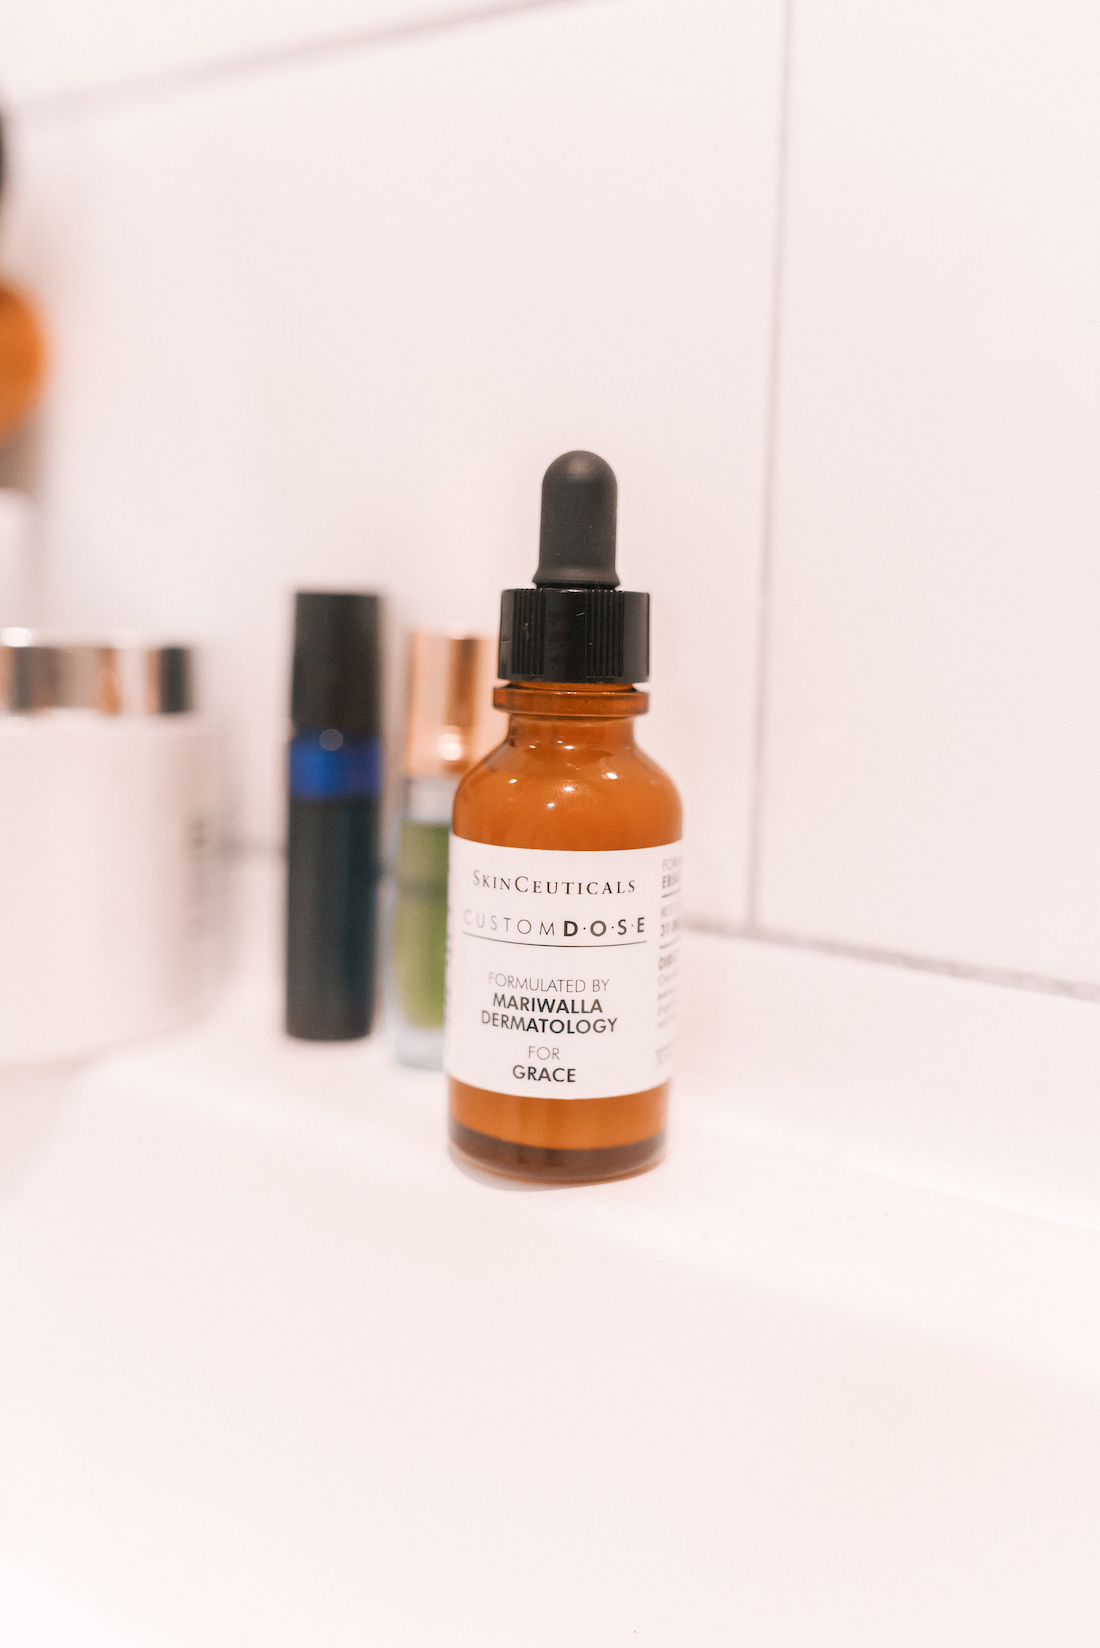 Skinceuticals Custom D.O.S.E. Serum with Mariwalla Dermatology - Grace Atwood